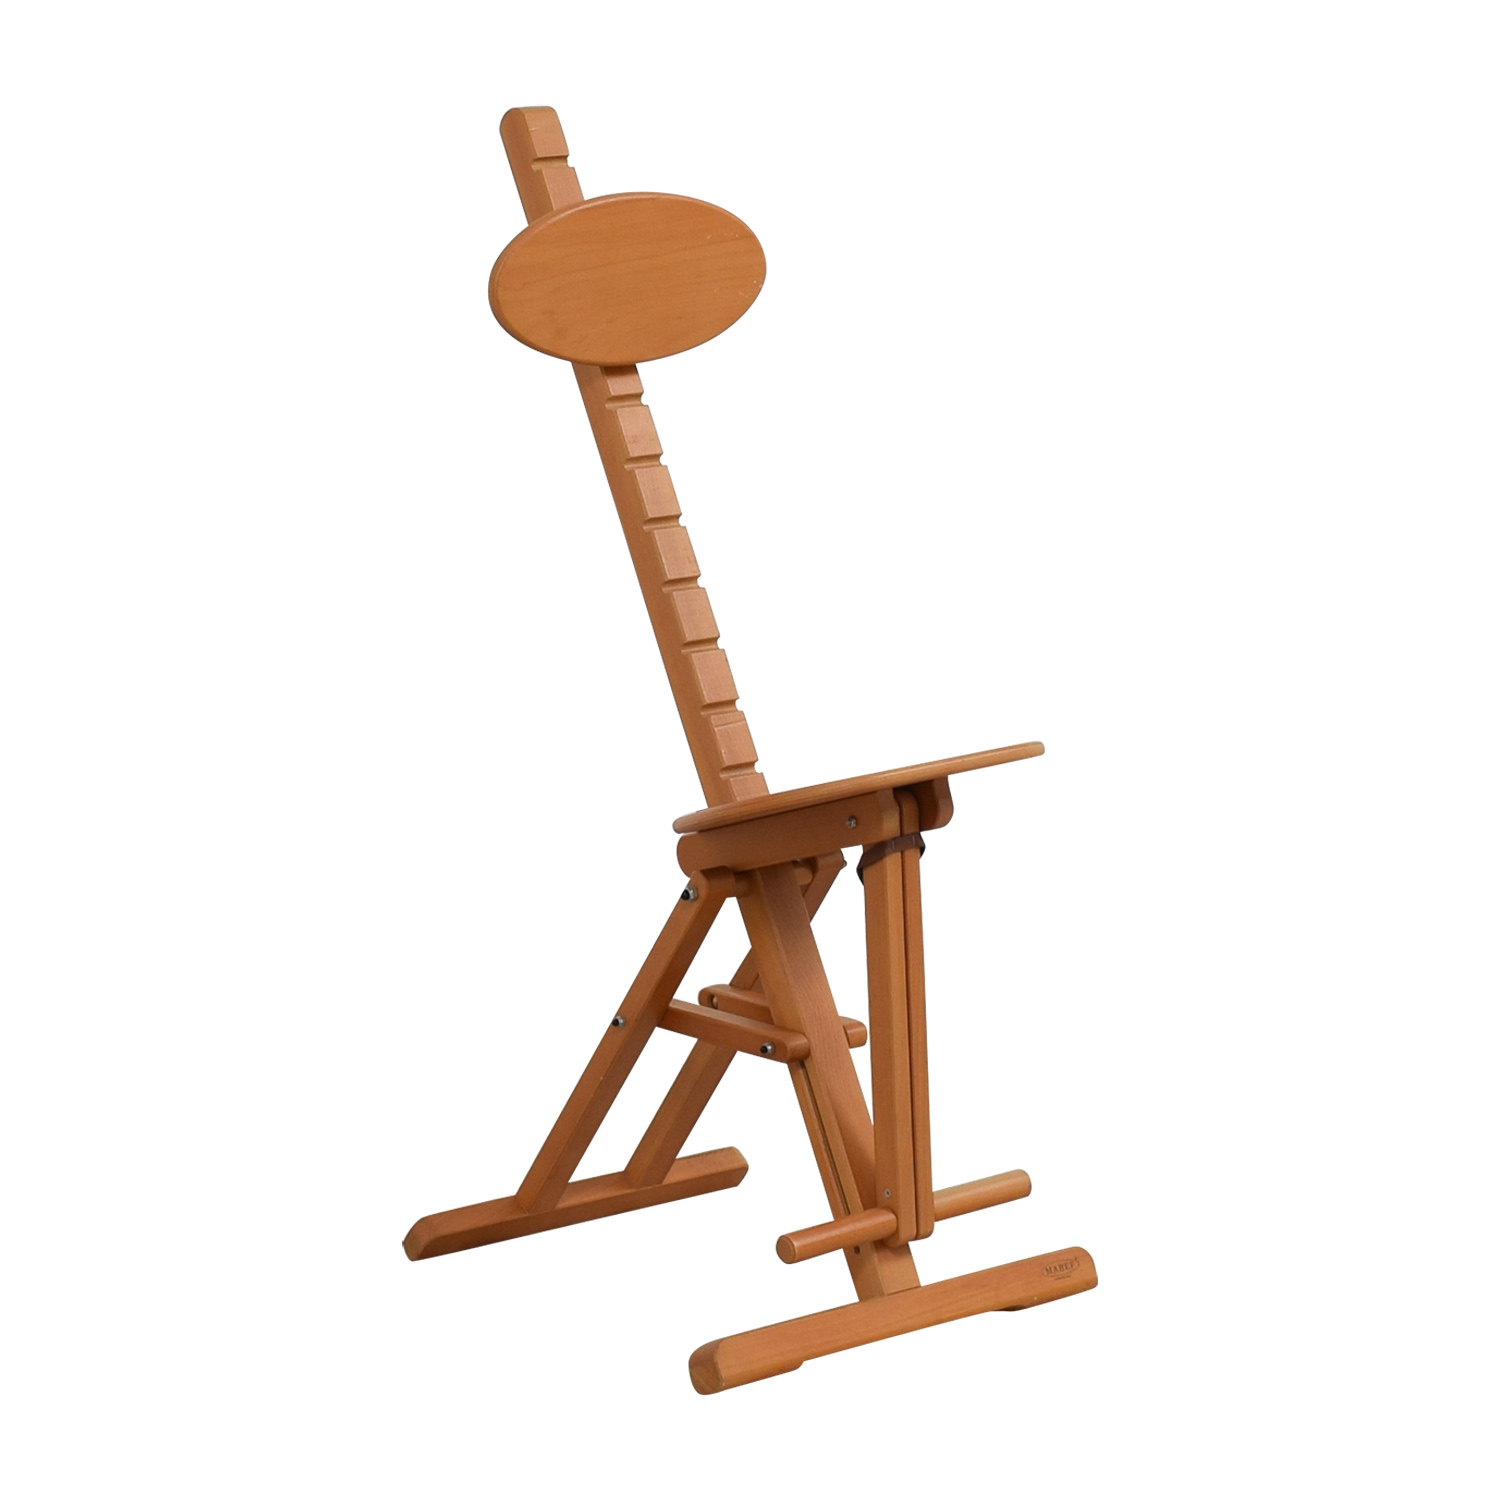 buy Mabef Mabef M44 Adjustable Artist Stool online